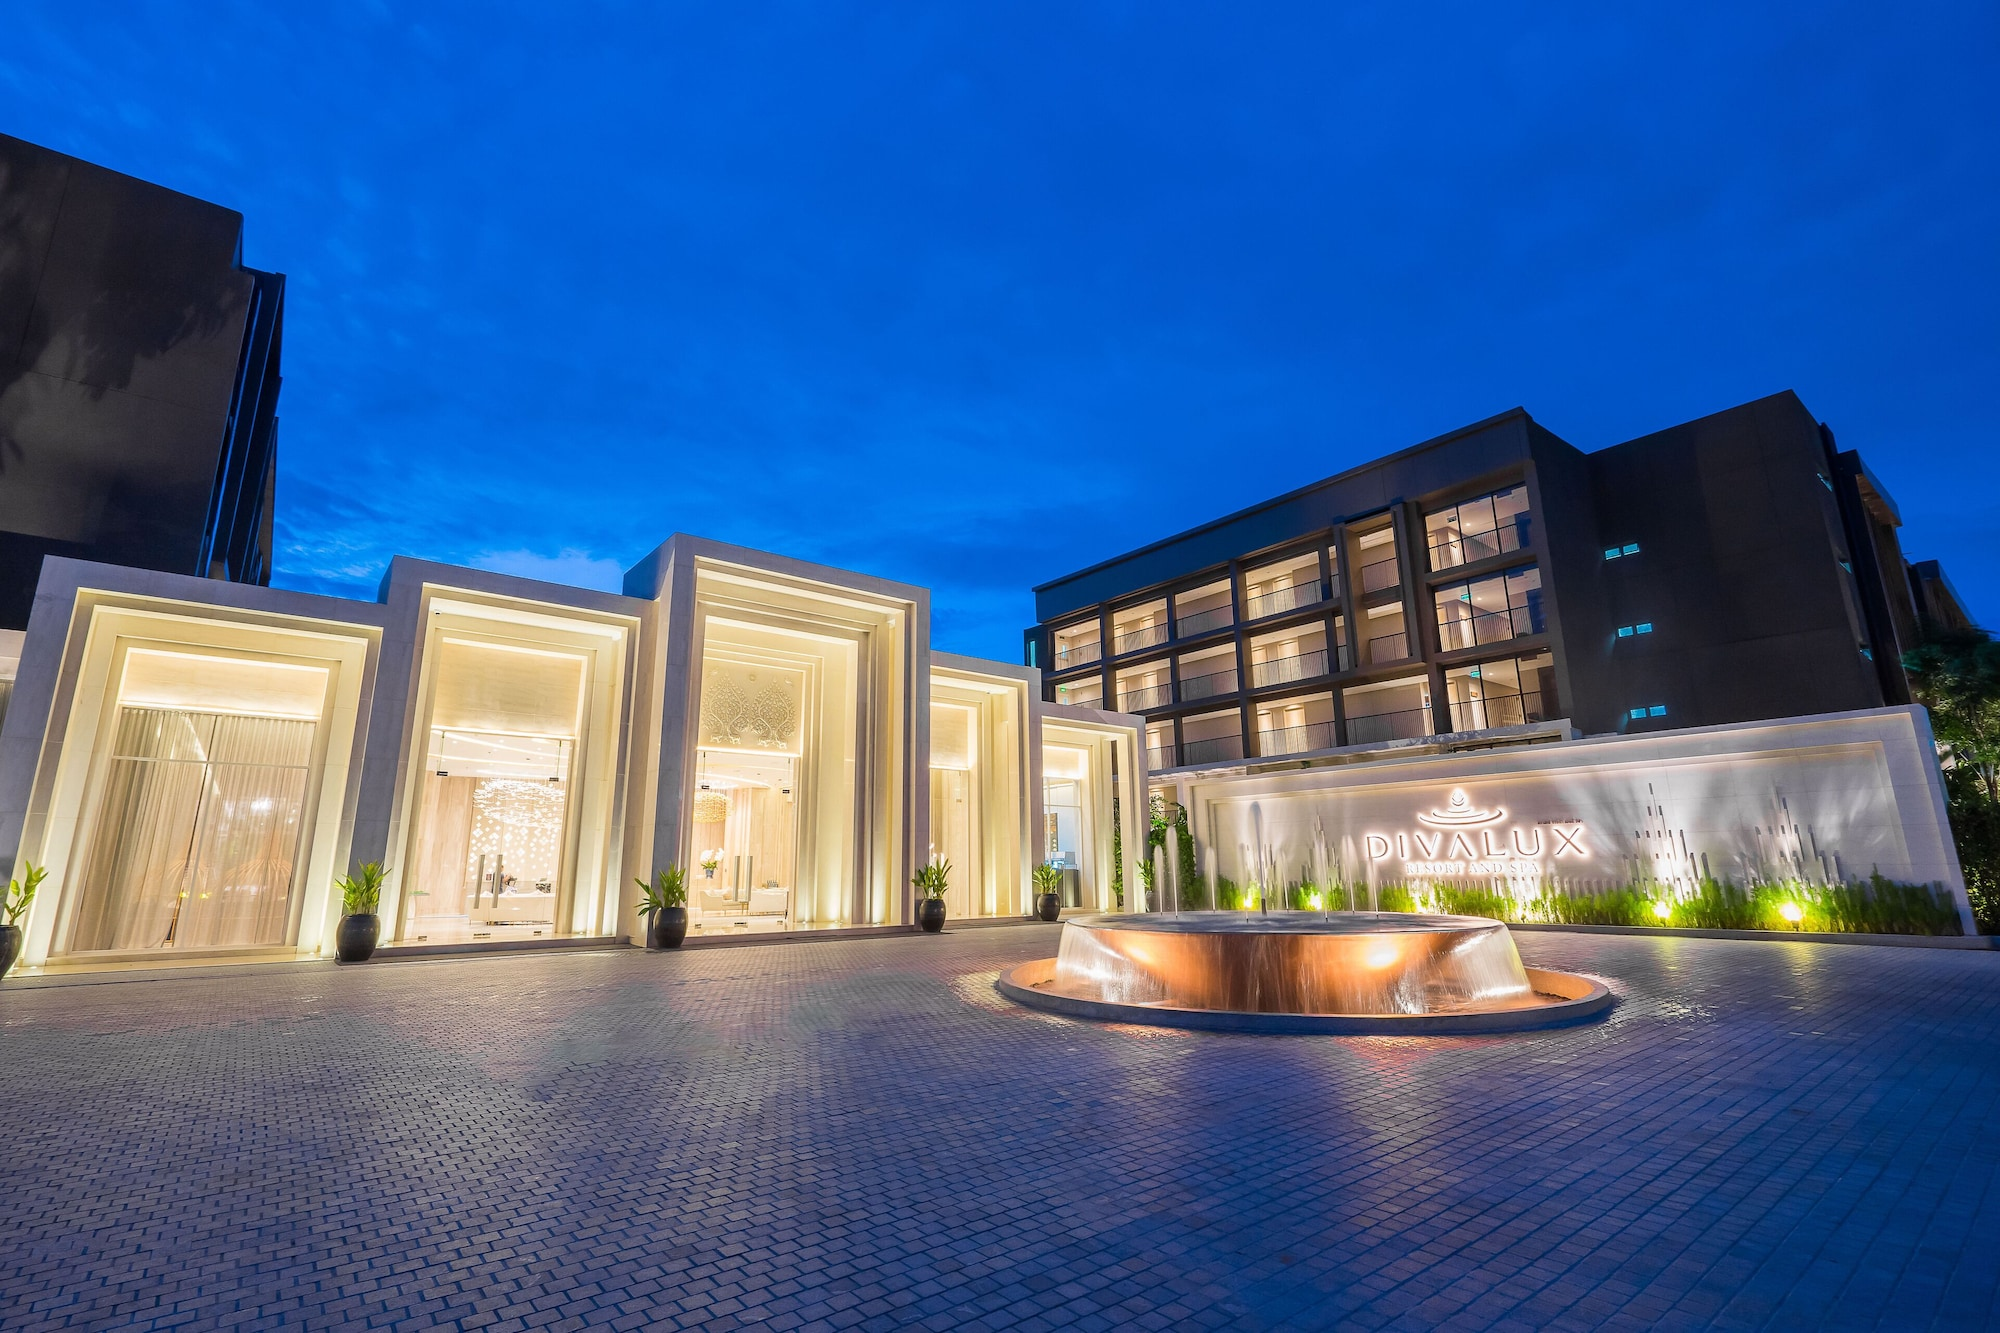 Divalux Resort and Spa Hotel, K. Bang Sao Thon